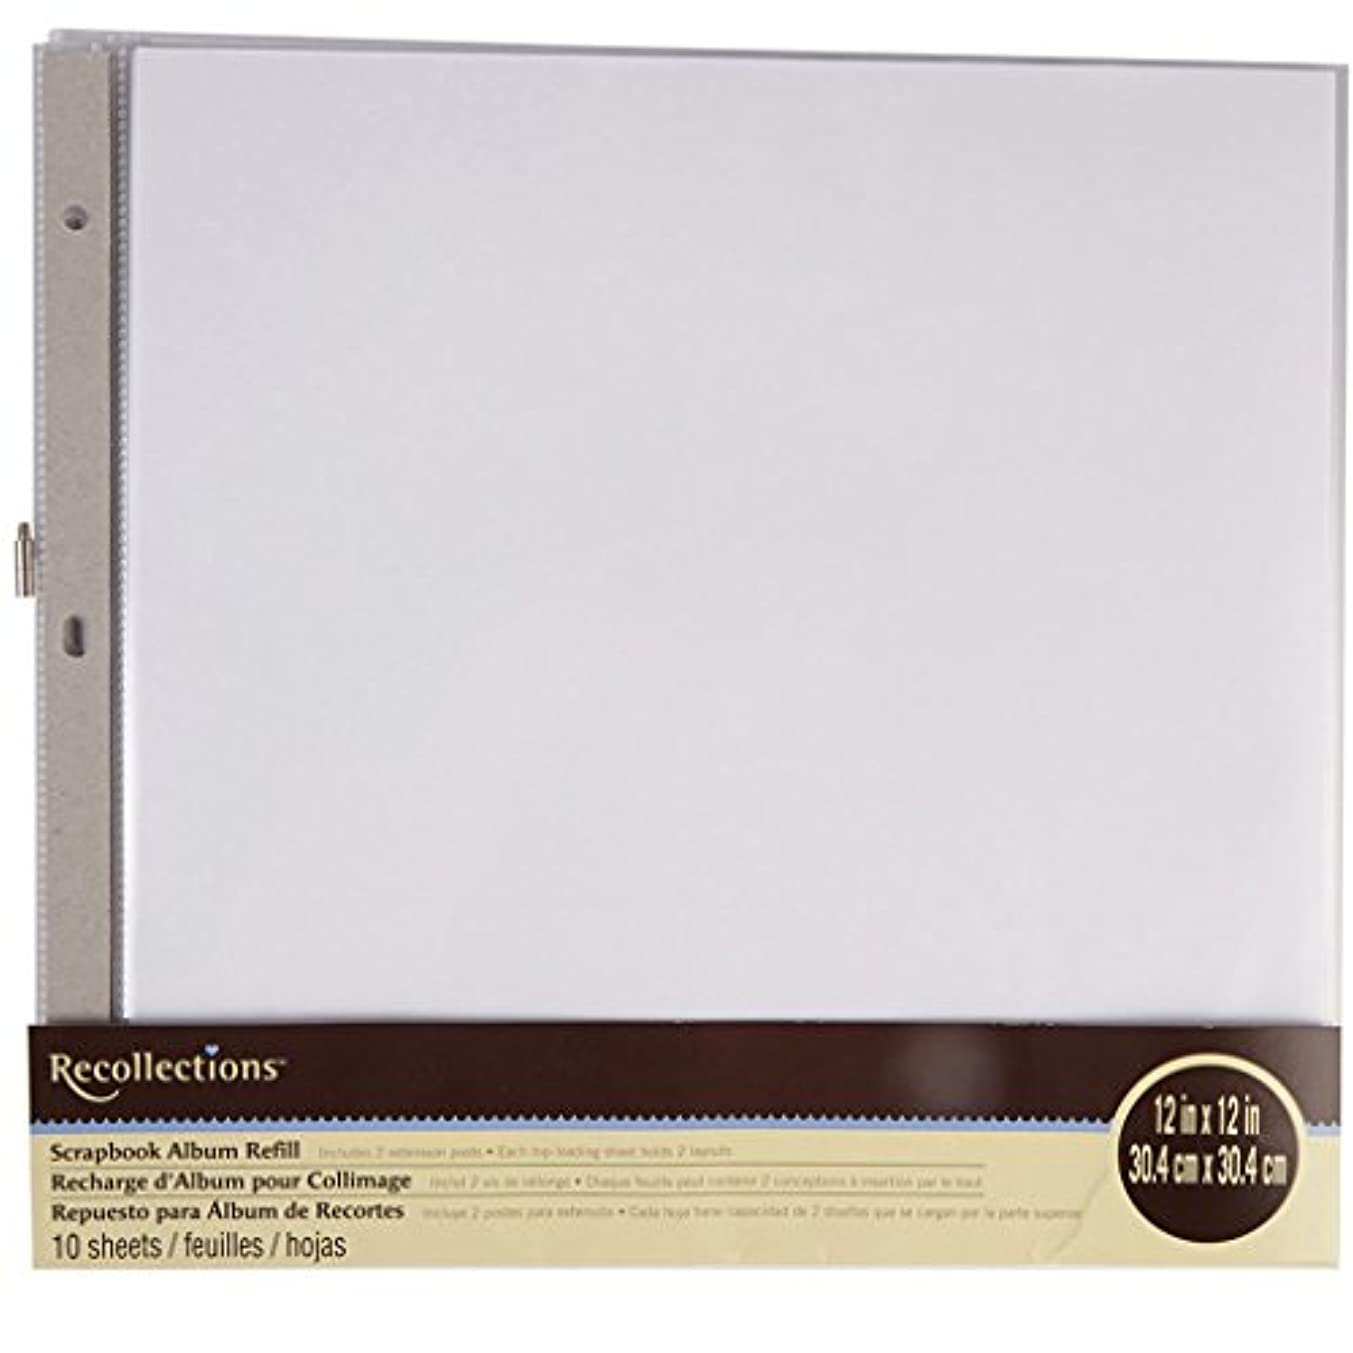 Recollections Scrapbook Album Refill Pages (12 x 12)